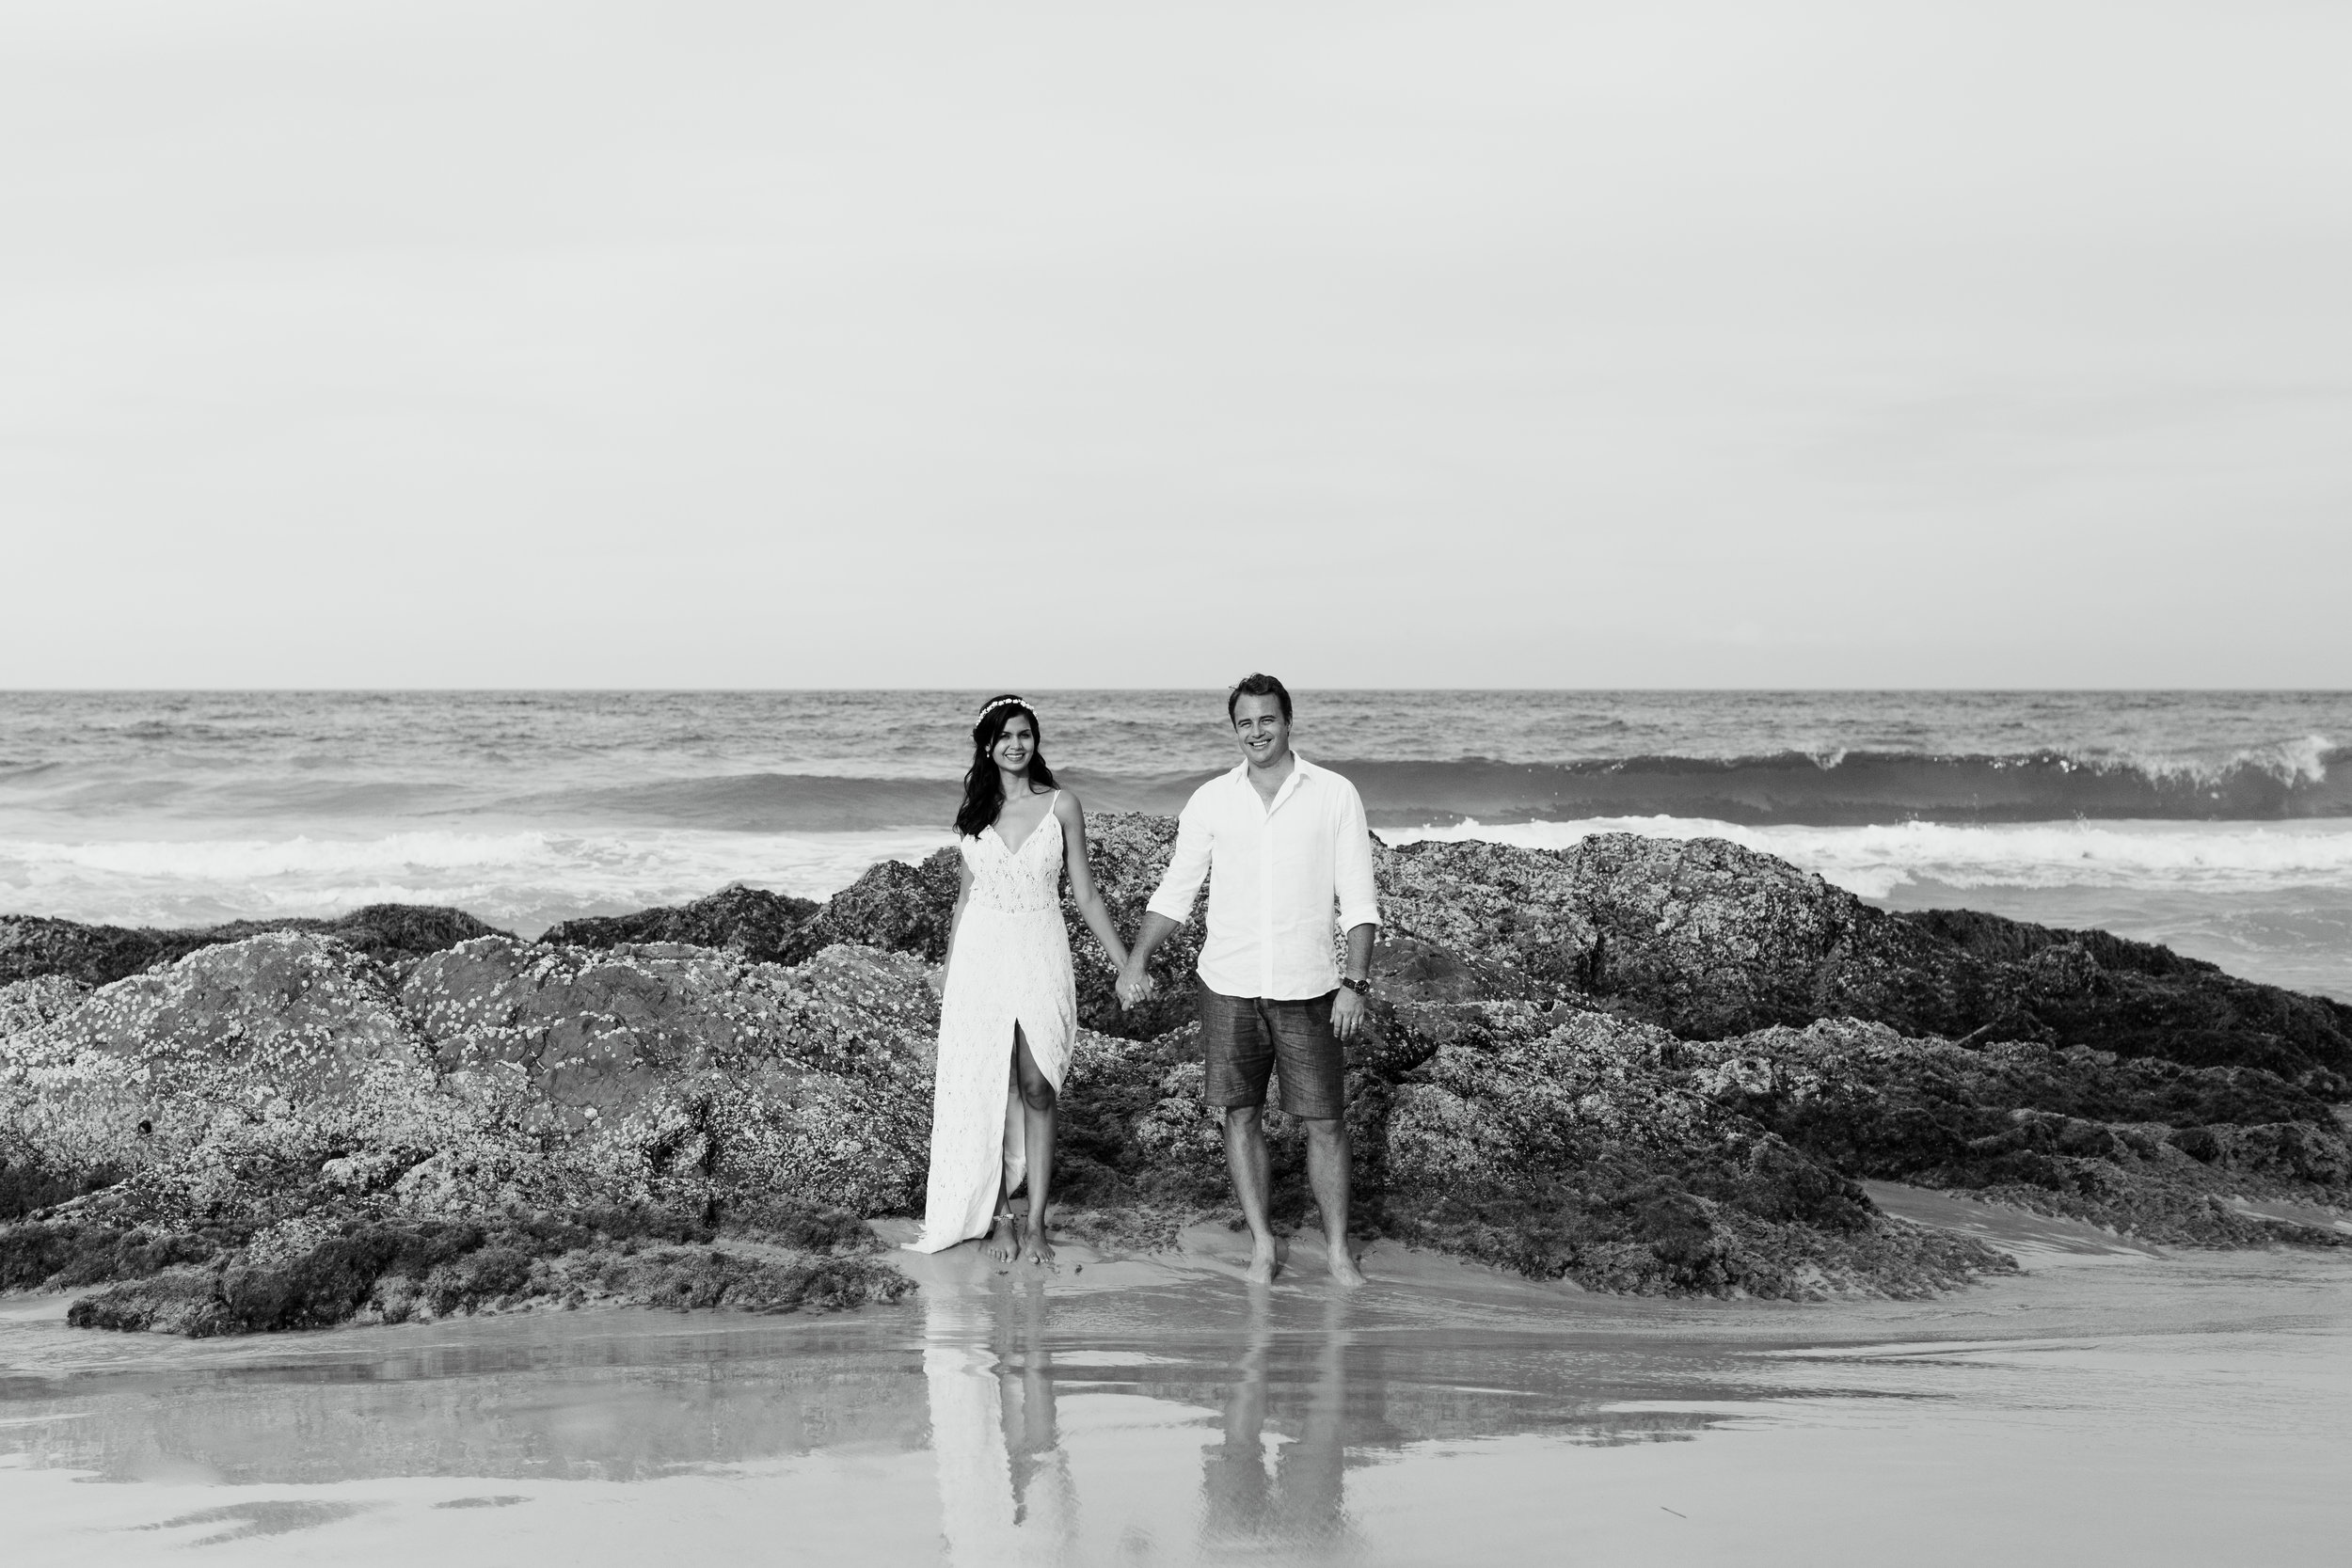 Brisbane family photographer kym renay.walsh.wed 034.jpg